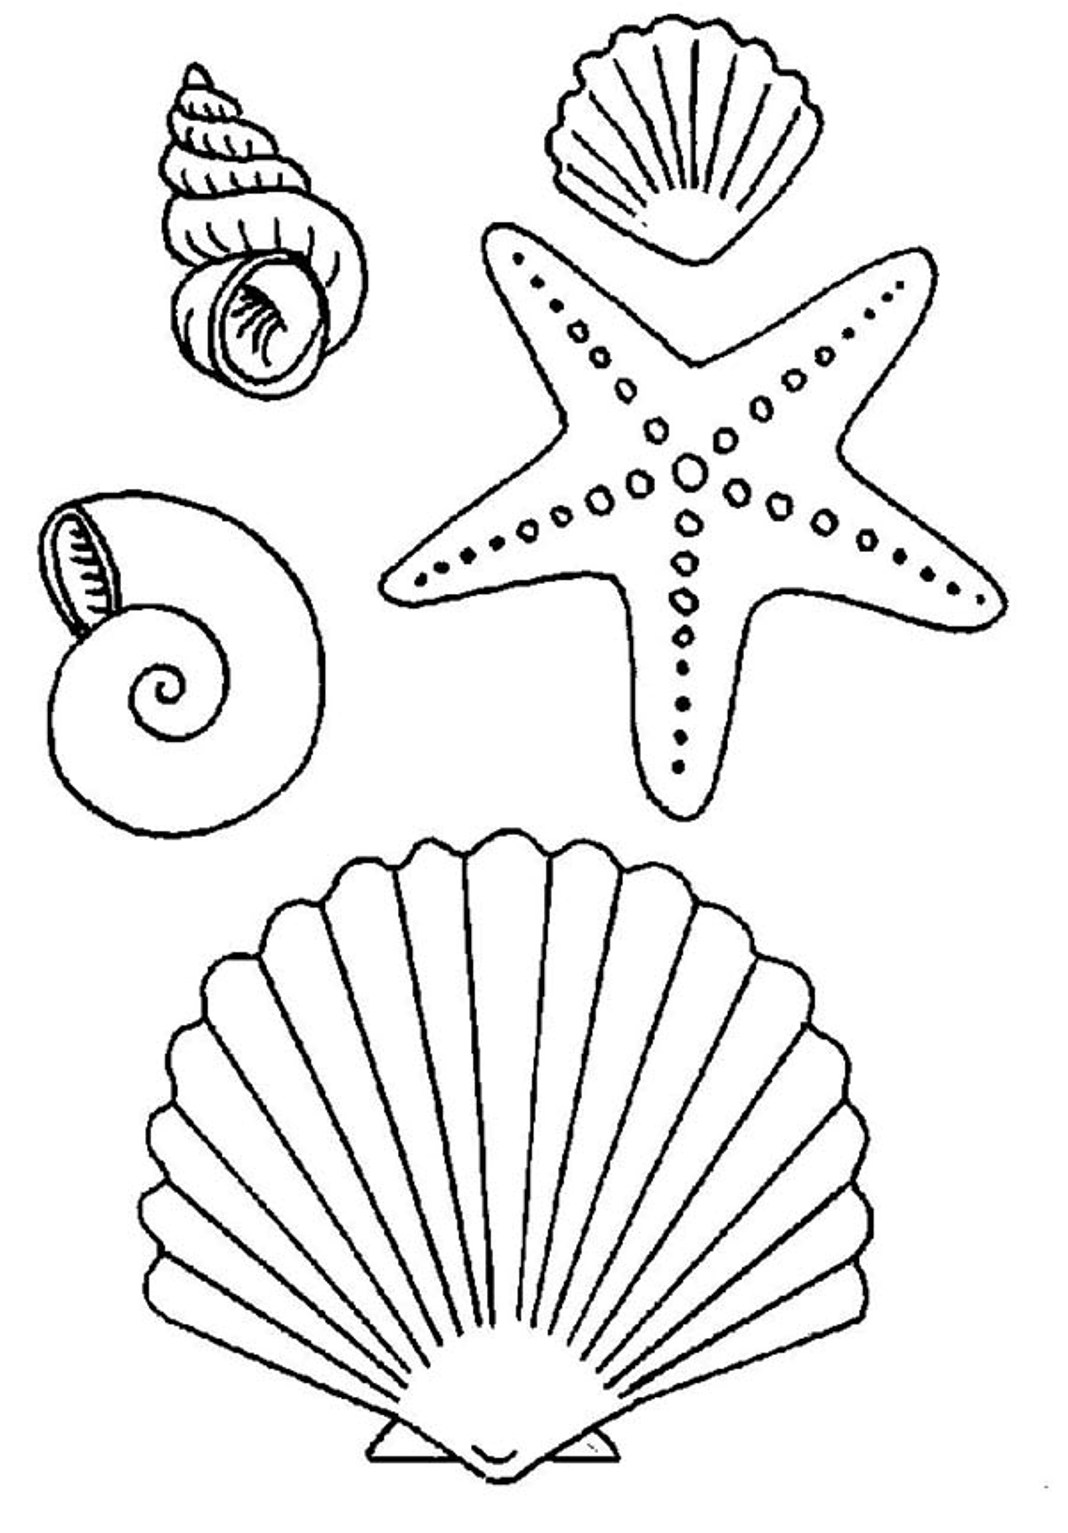 1068x1533 Images For Gt Simple Seashell Drawings Tattoos I Want